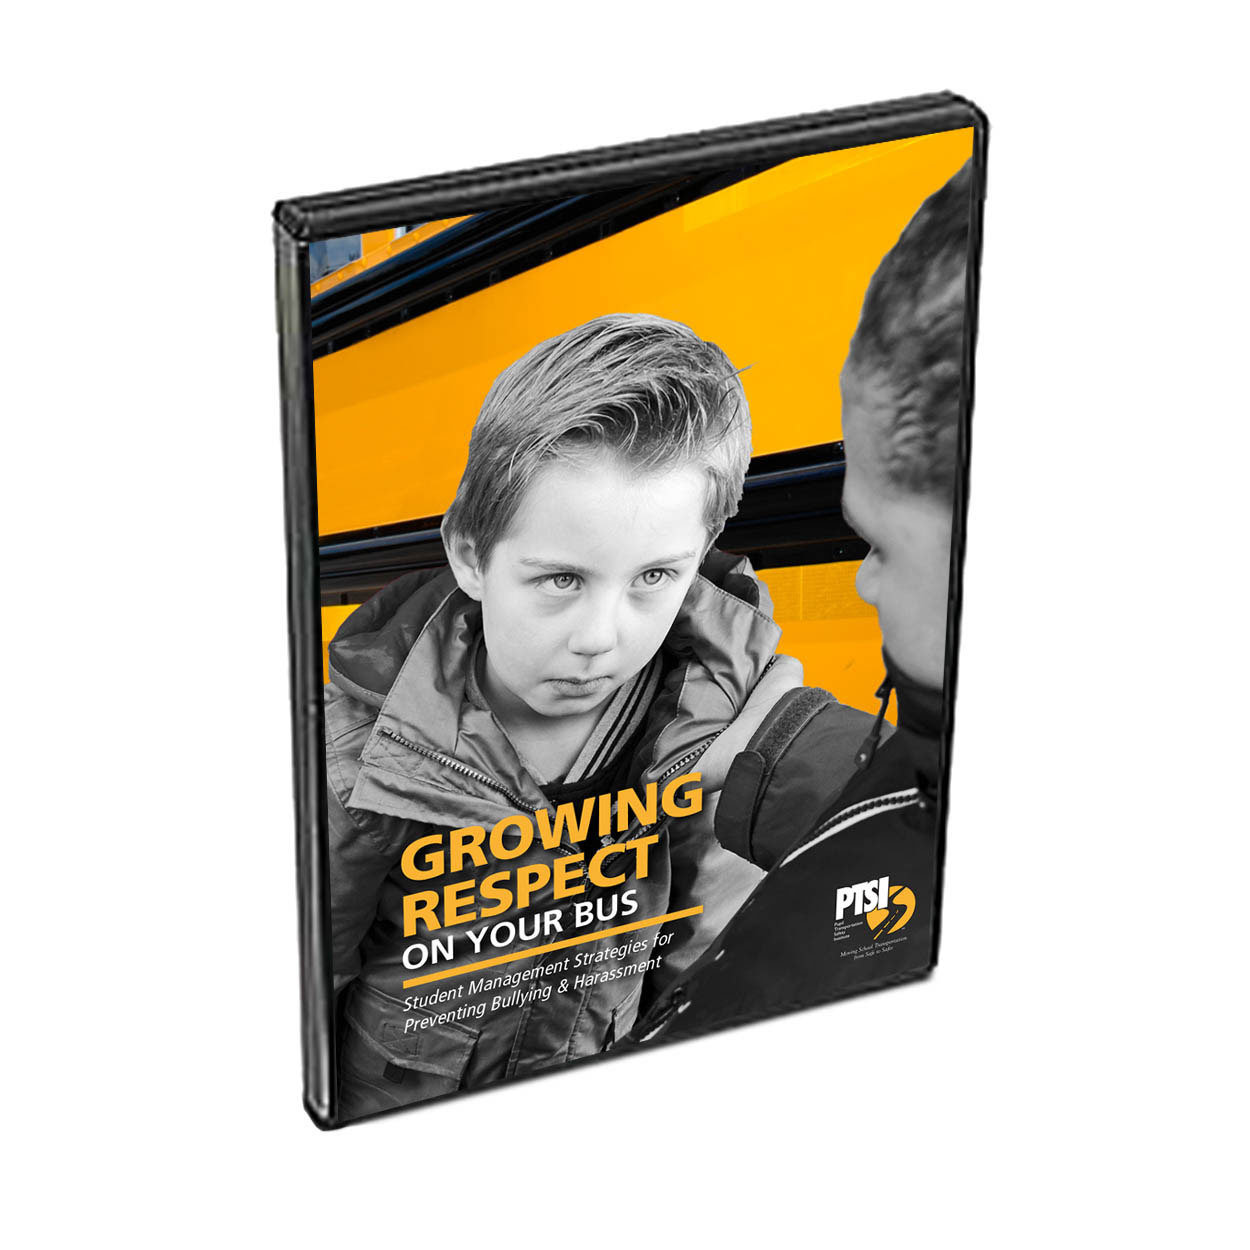 Growing Respect On Your Bus: Student Management Strategies for Preventing Bullying and Harassment on the School Bus (DVD) 2160D